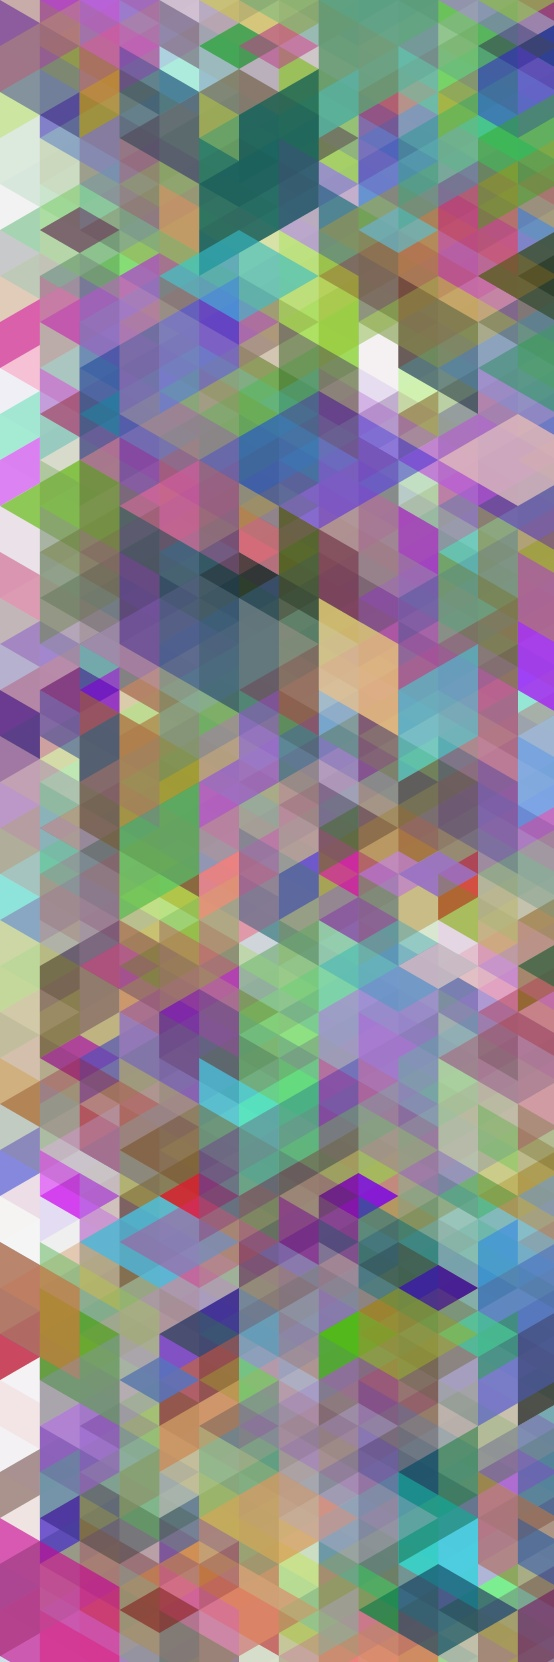 Panelscape - Randomly generated axonometric visual space with slow motion in alpha values.Prints Pattern, Generation Axonometric, Random Generation, Pretty Darning, Paolo Tonon, Alpha Values, Slow Motion, Darning Epic, Axonometric Visual